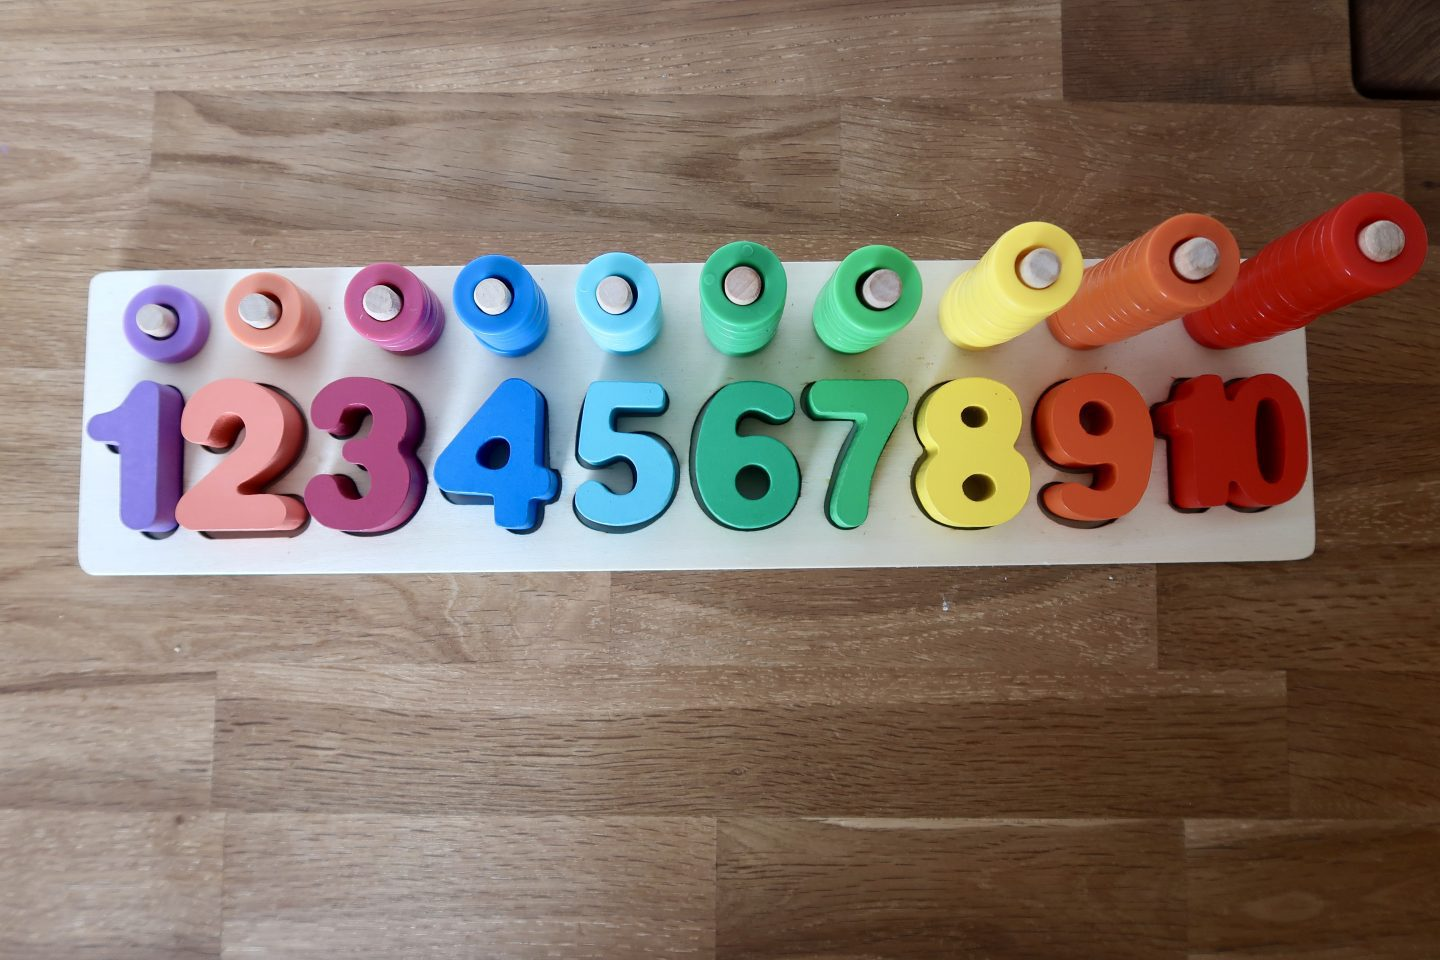 A rainbow coloured wooden counting toy. The numbers 1 to 10 are listed with corresponding coloured rings